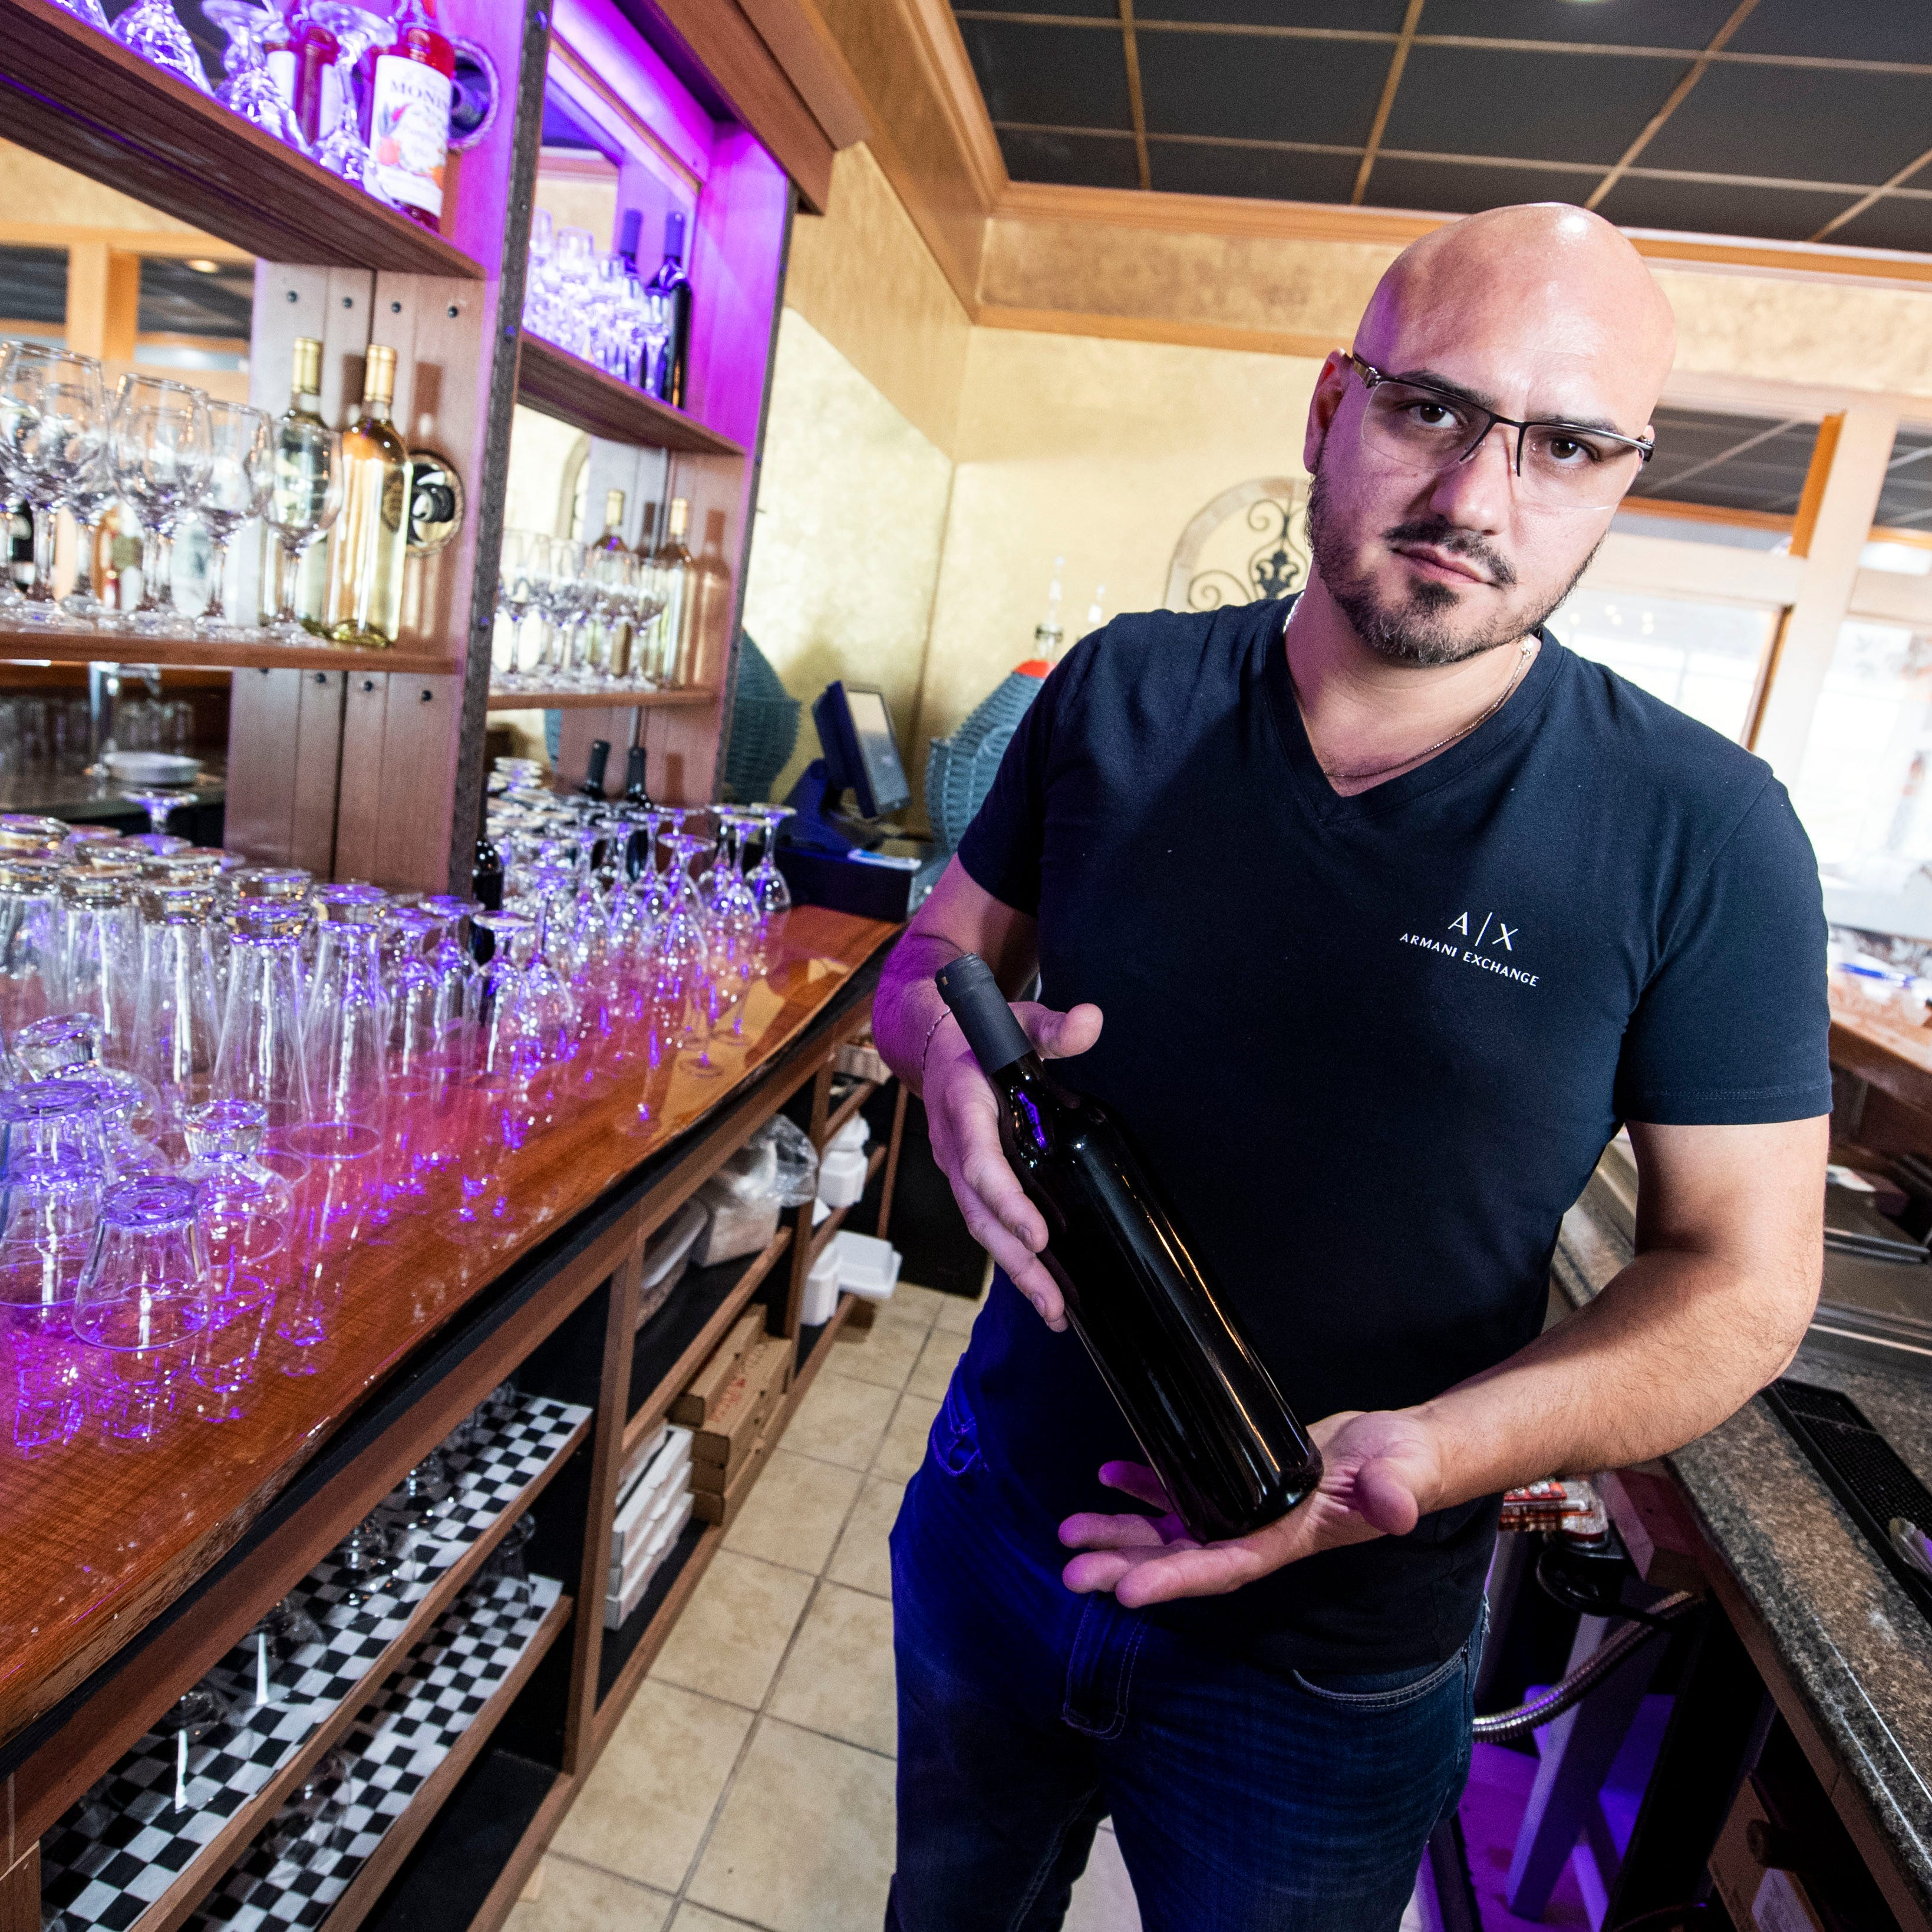 Wood Fire Italian Grill in York Township makes its own wine right before your eyes